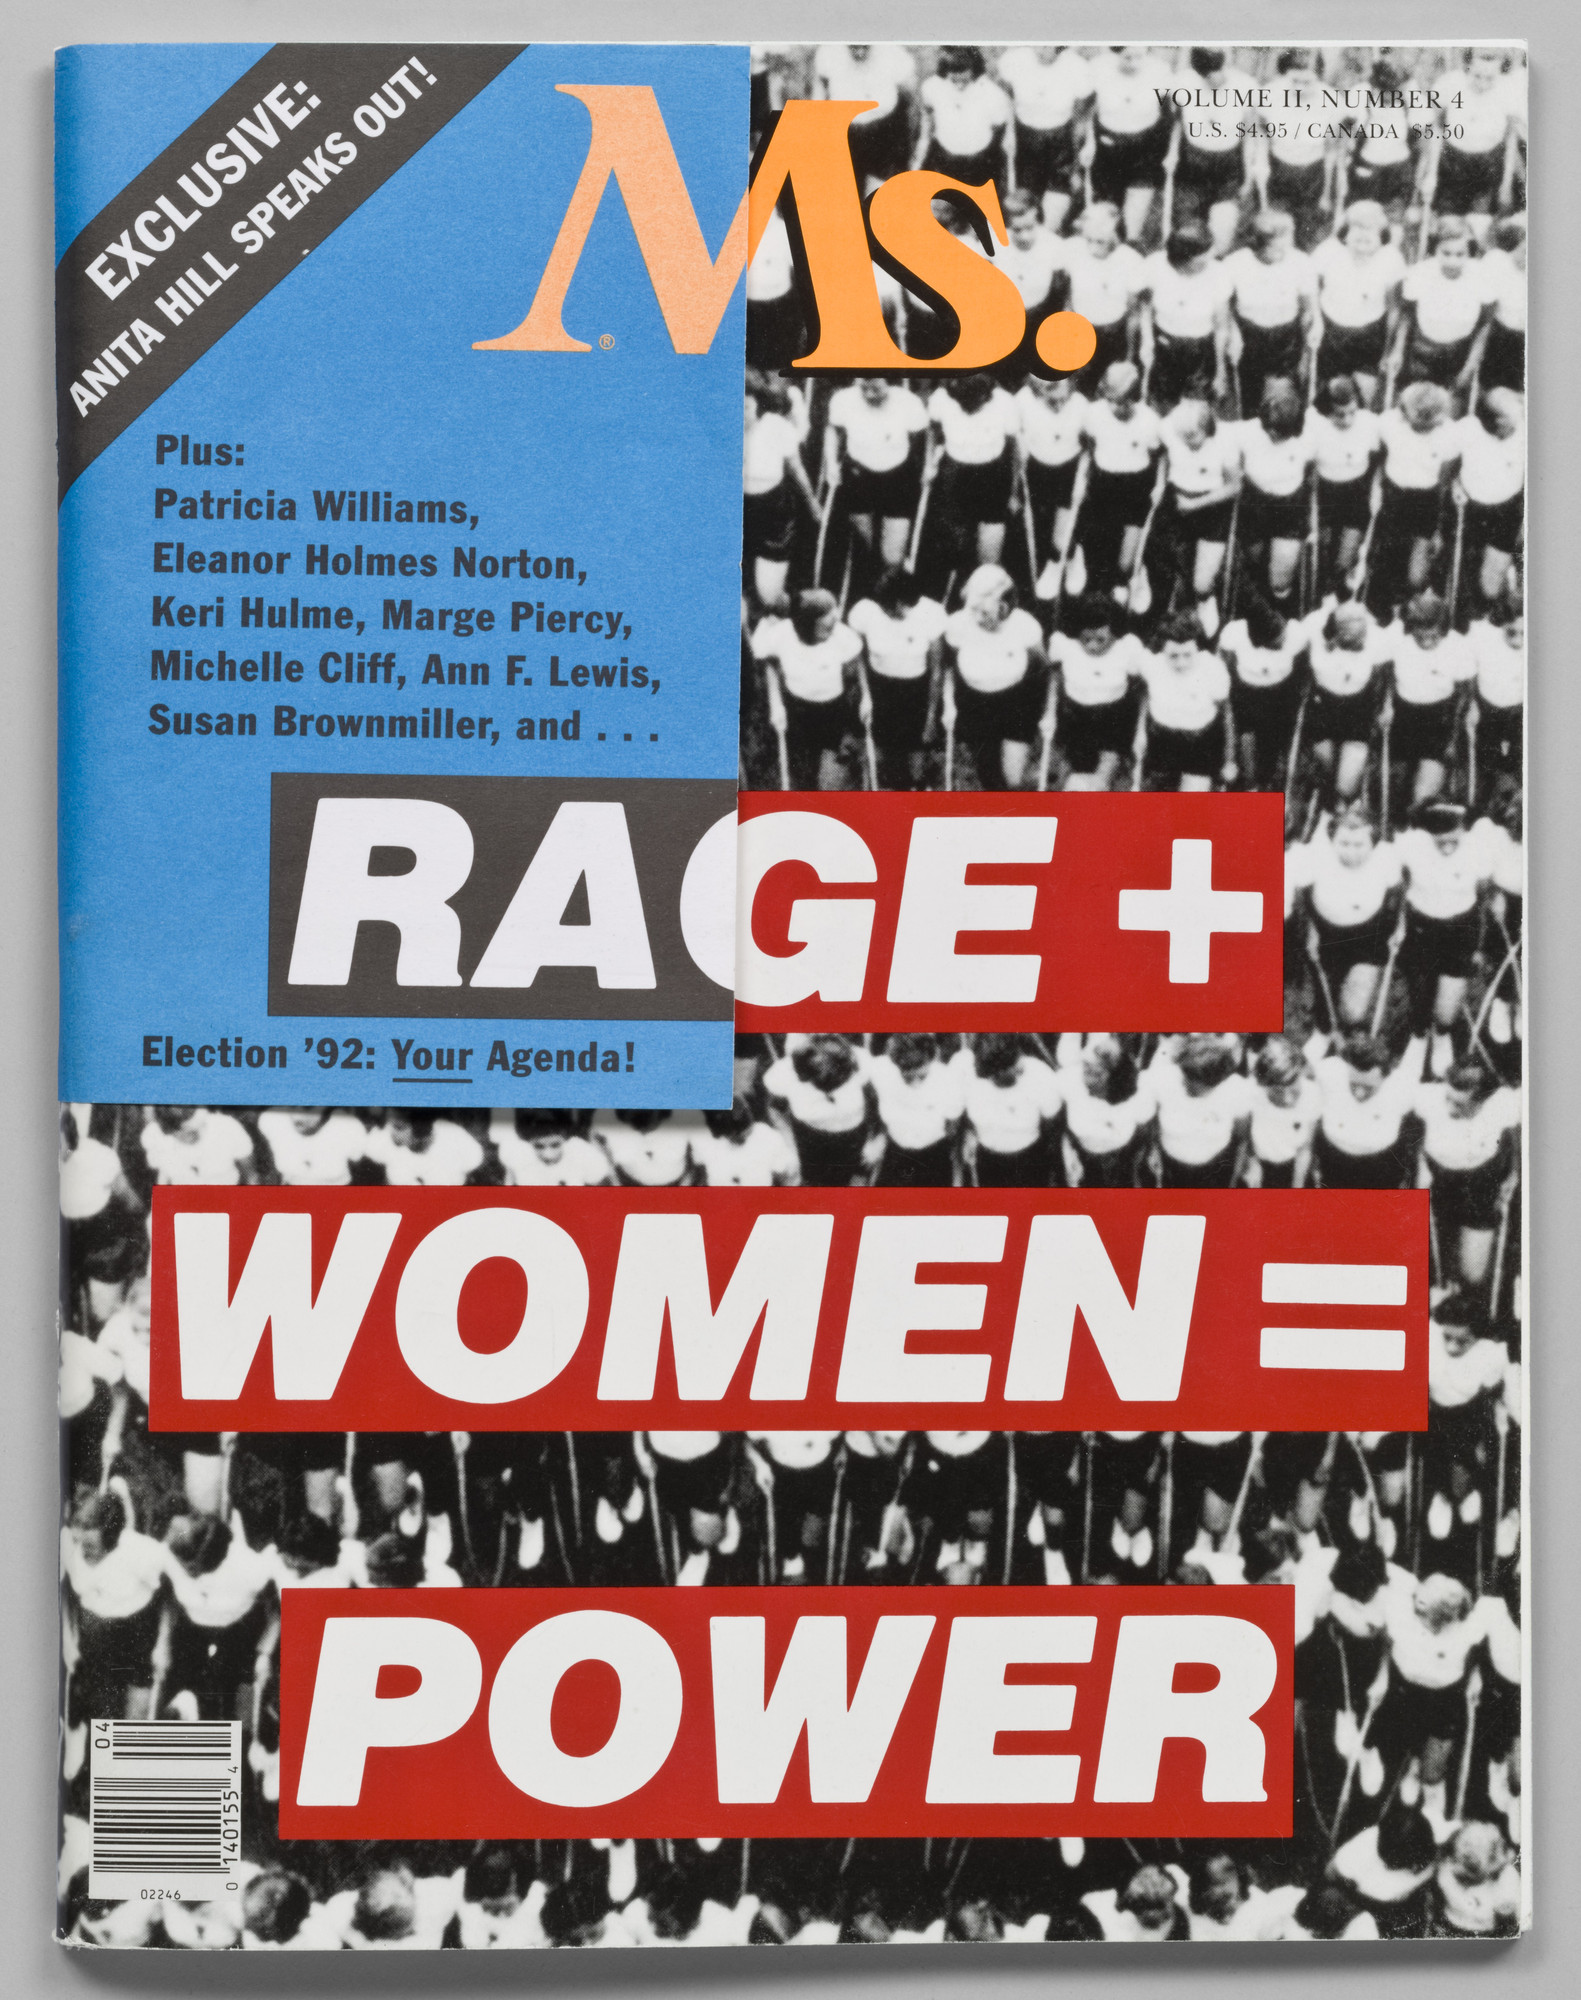 Barbara Kruger. Rage + Women = Power, cover for Ms. magazine. January/February 1992